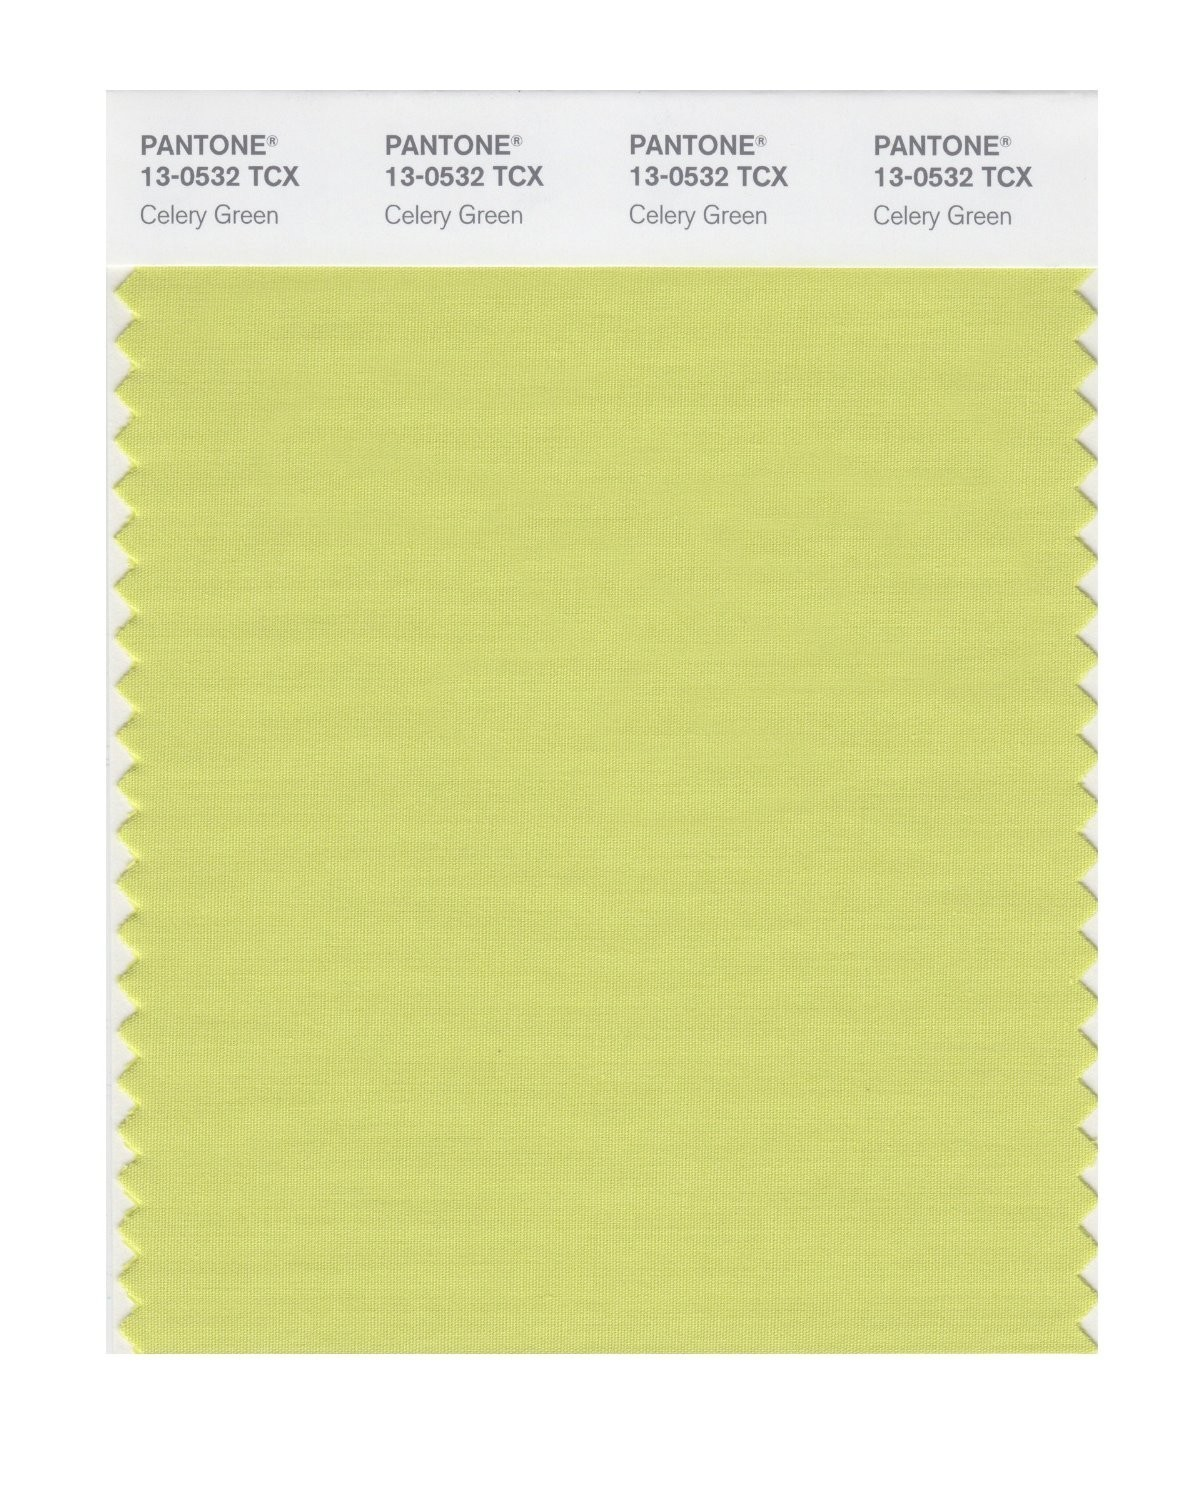 Pantone 13-0532 TCX Swatch Card Celery Green